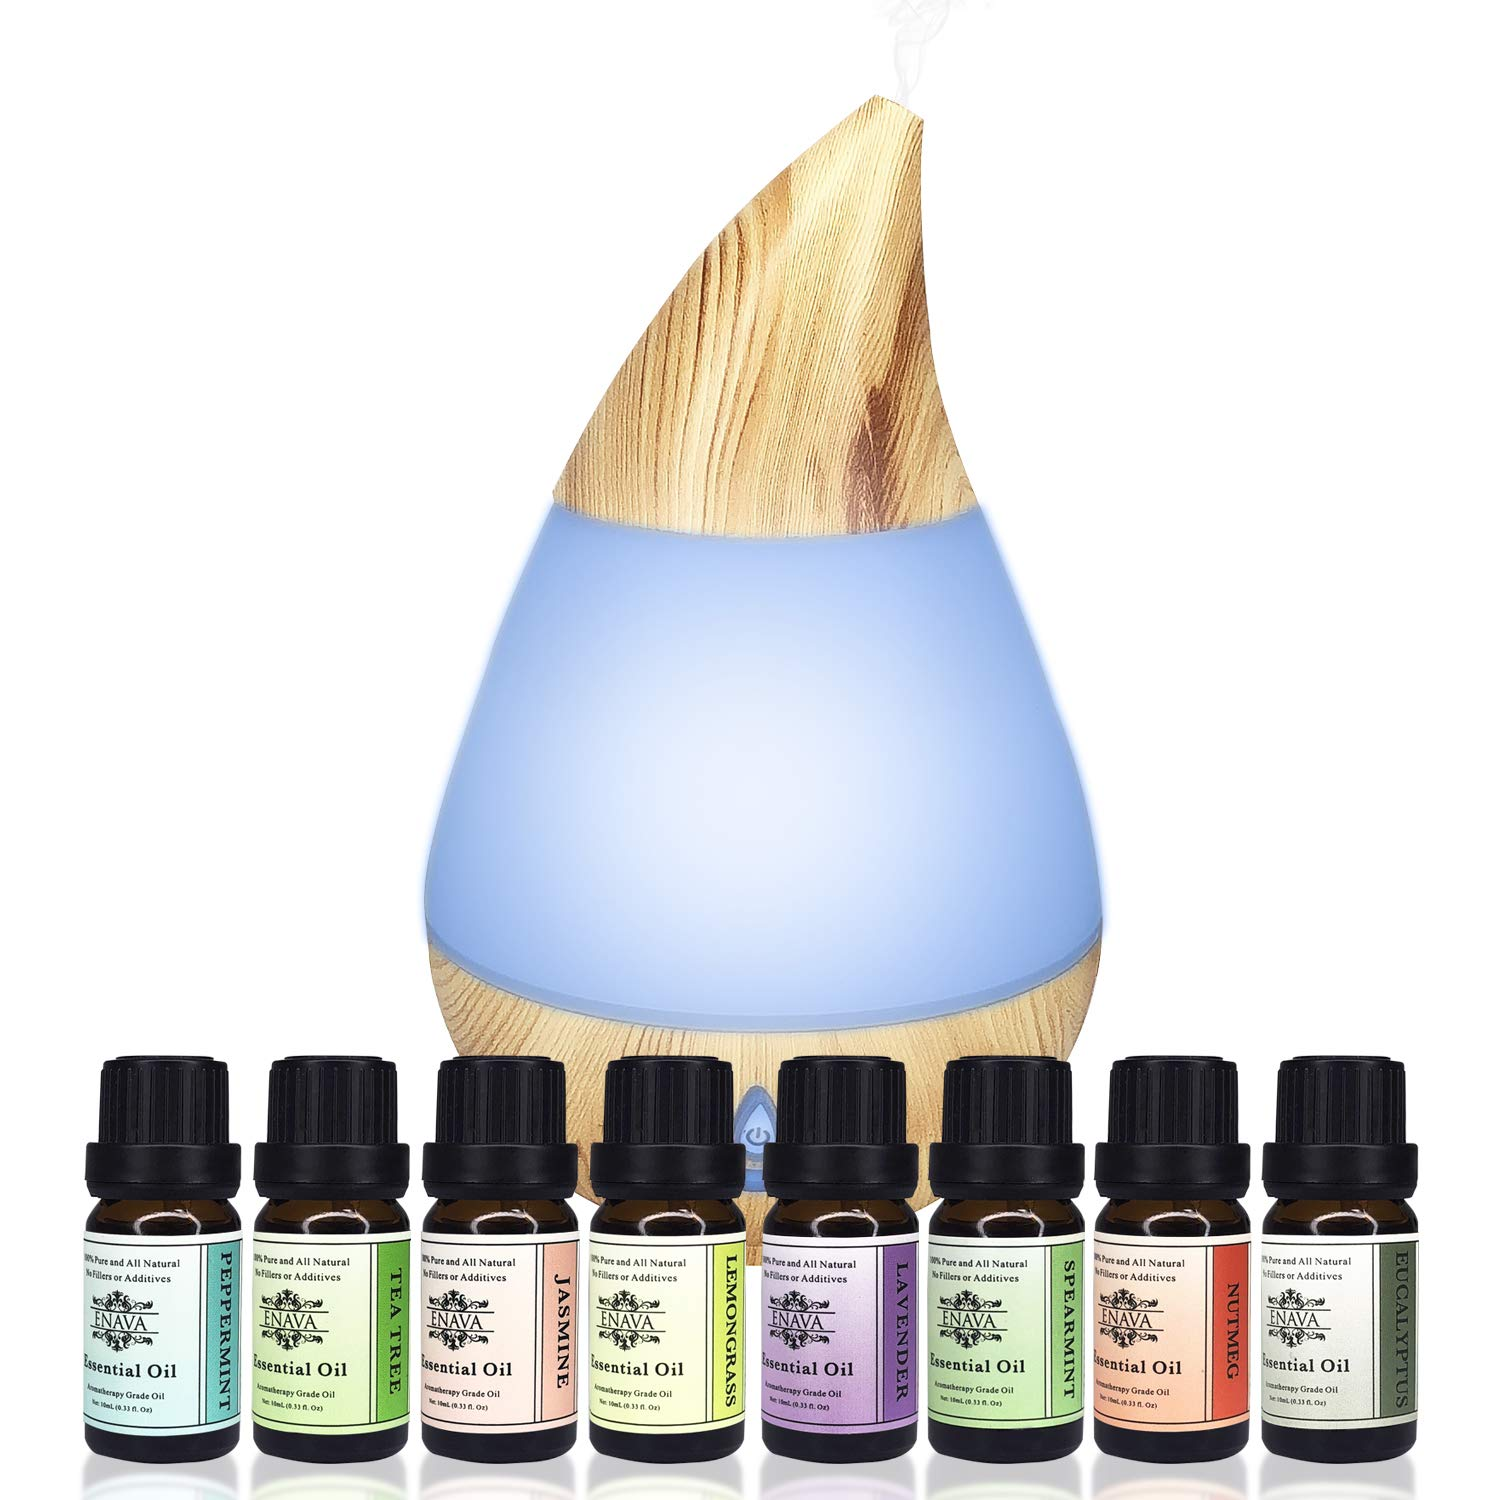 Enava Aromatherapy Essential Oils Diffuser 120ml and Top 8 Oils Gift Set - Ultrasonic Cool Mist Humidifier Waterless Auto Shut-Off and 7 color LED Eucalyptus Lavender Pure Therapeutic Grade Aroma Oils by Enava Organics